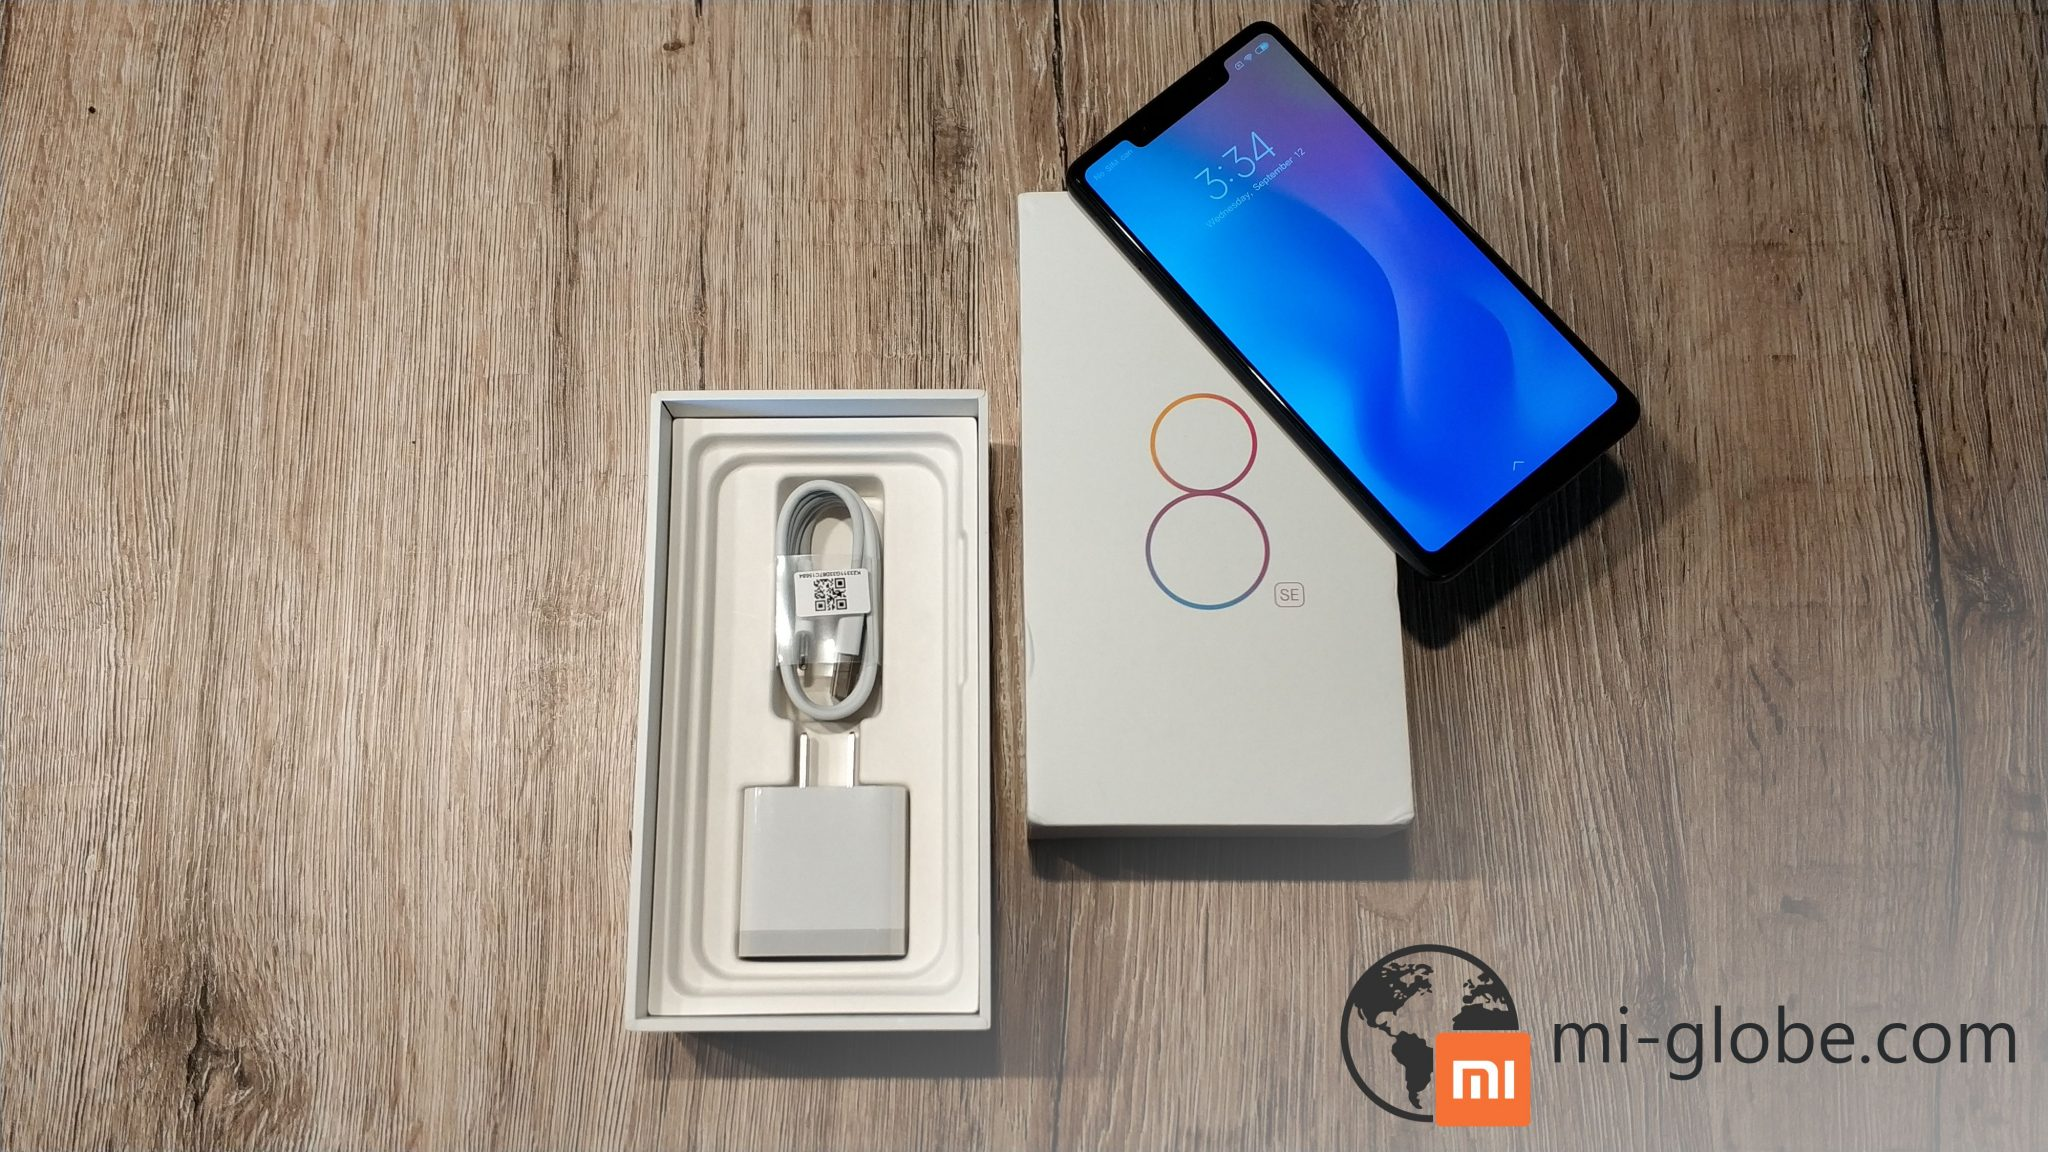 mi-globe_performance_review_mi8se_deviceinfo